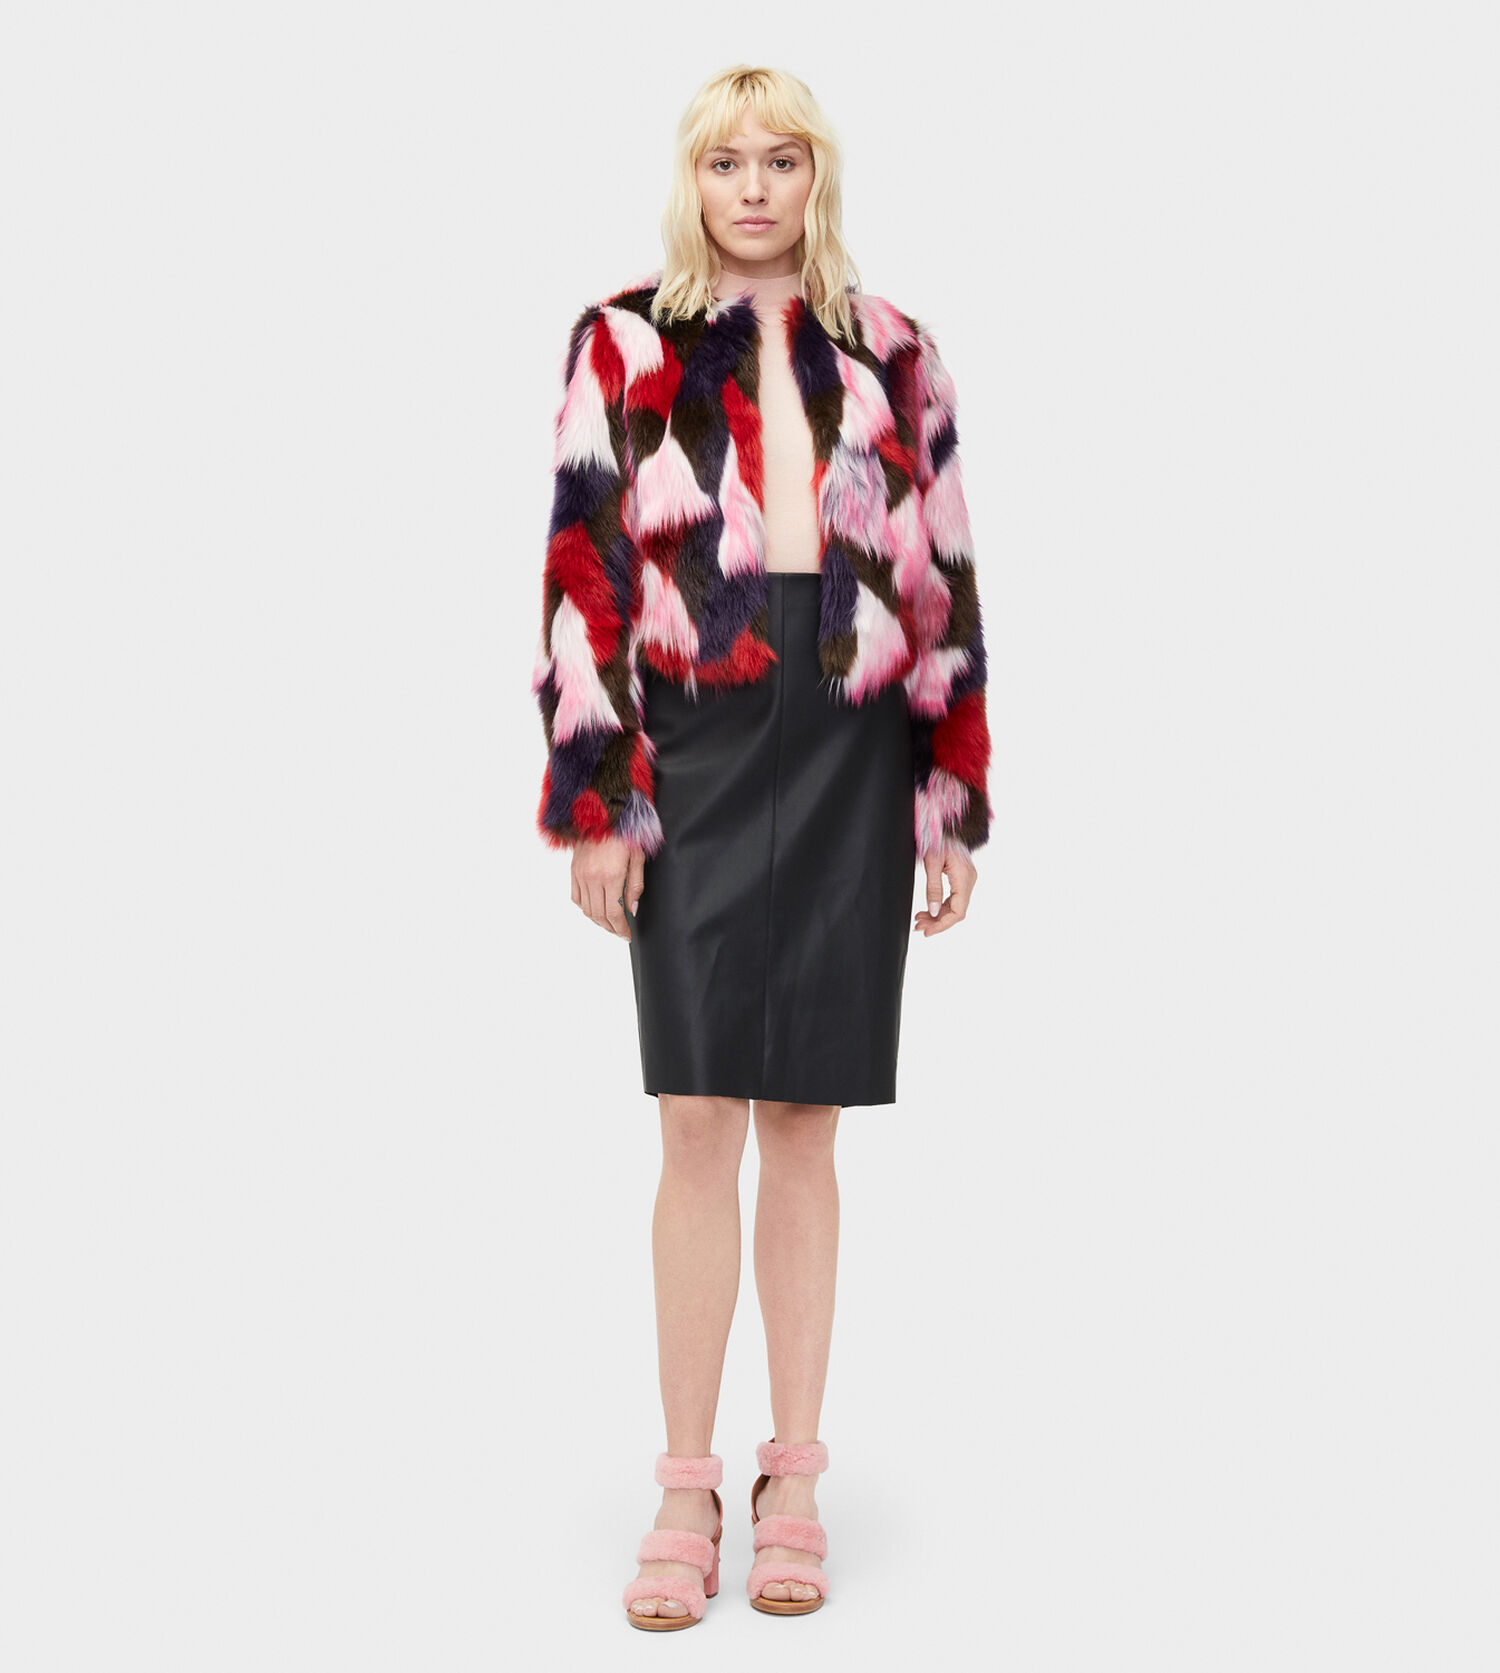 0e0b17713ac3 Zoom Lorrena Patchwork Faux Fur - Image 3 of 3